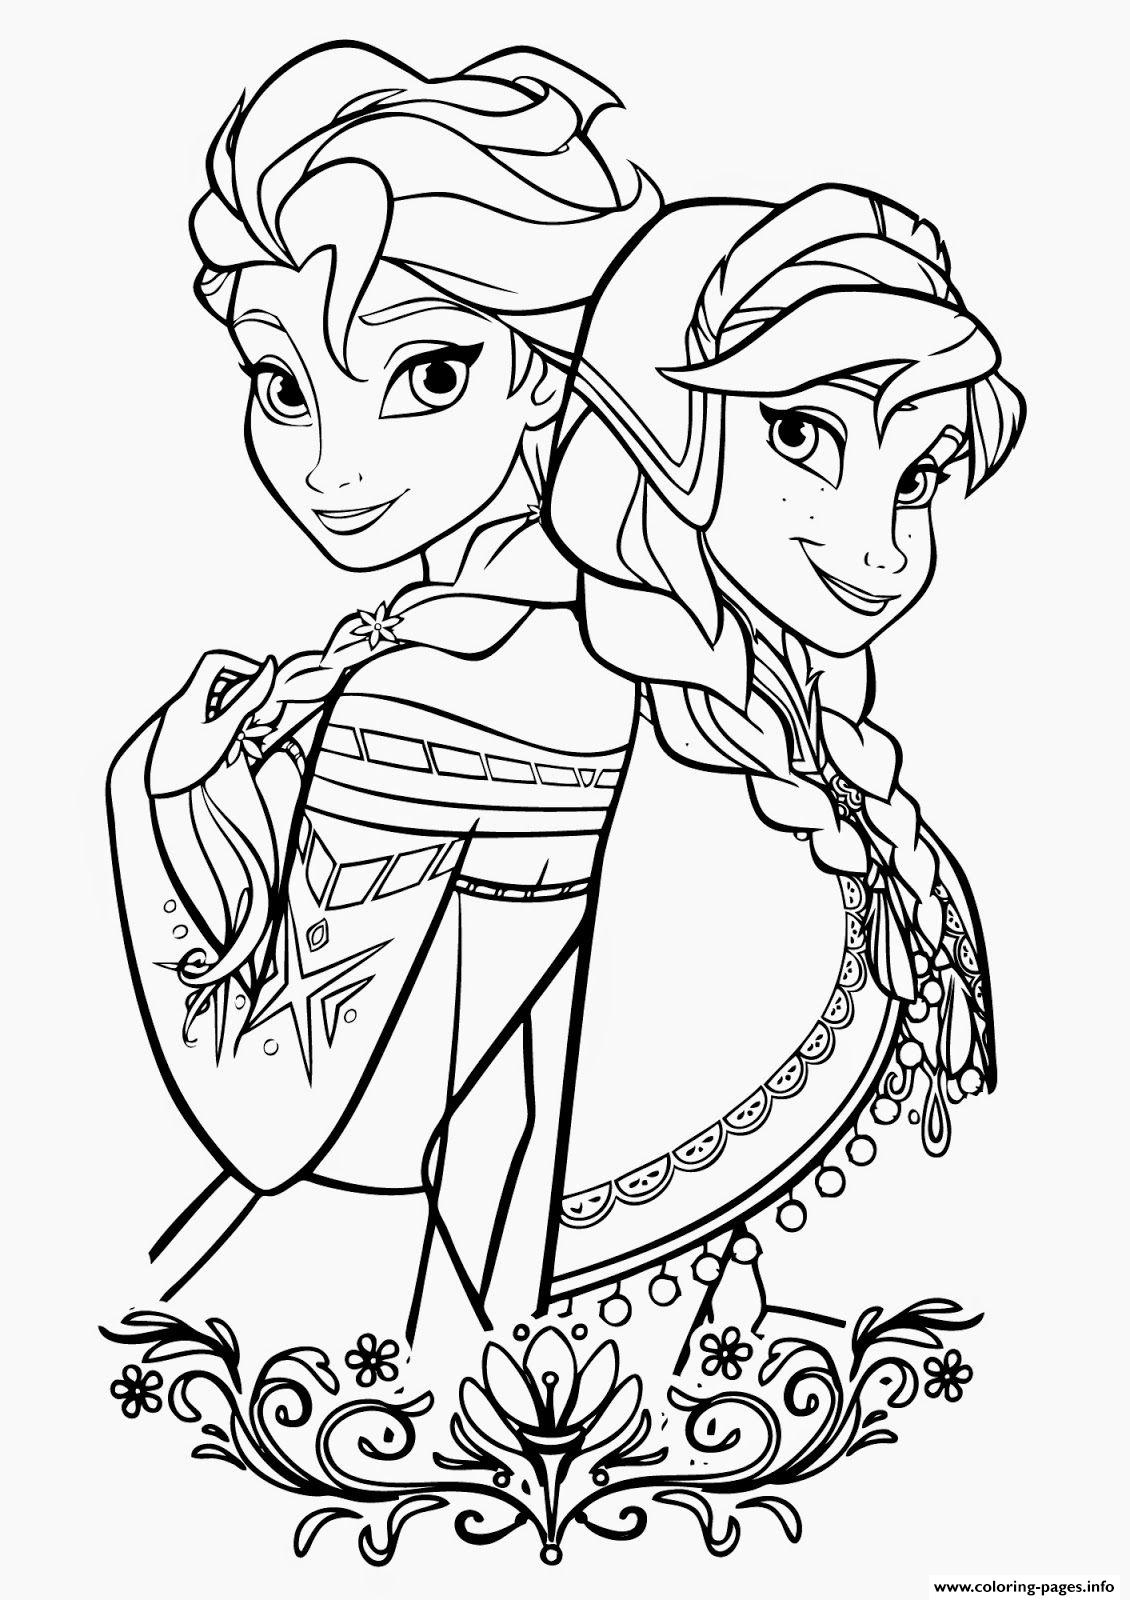 Frozen Cartoon Coloring Pages Printable